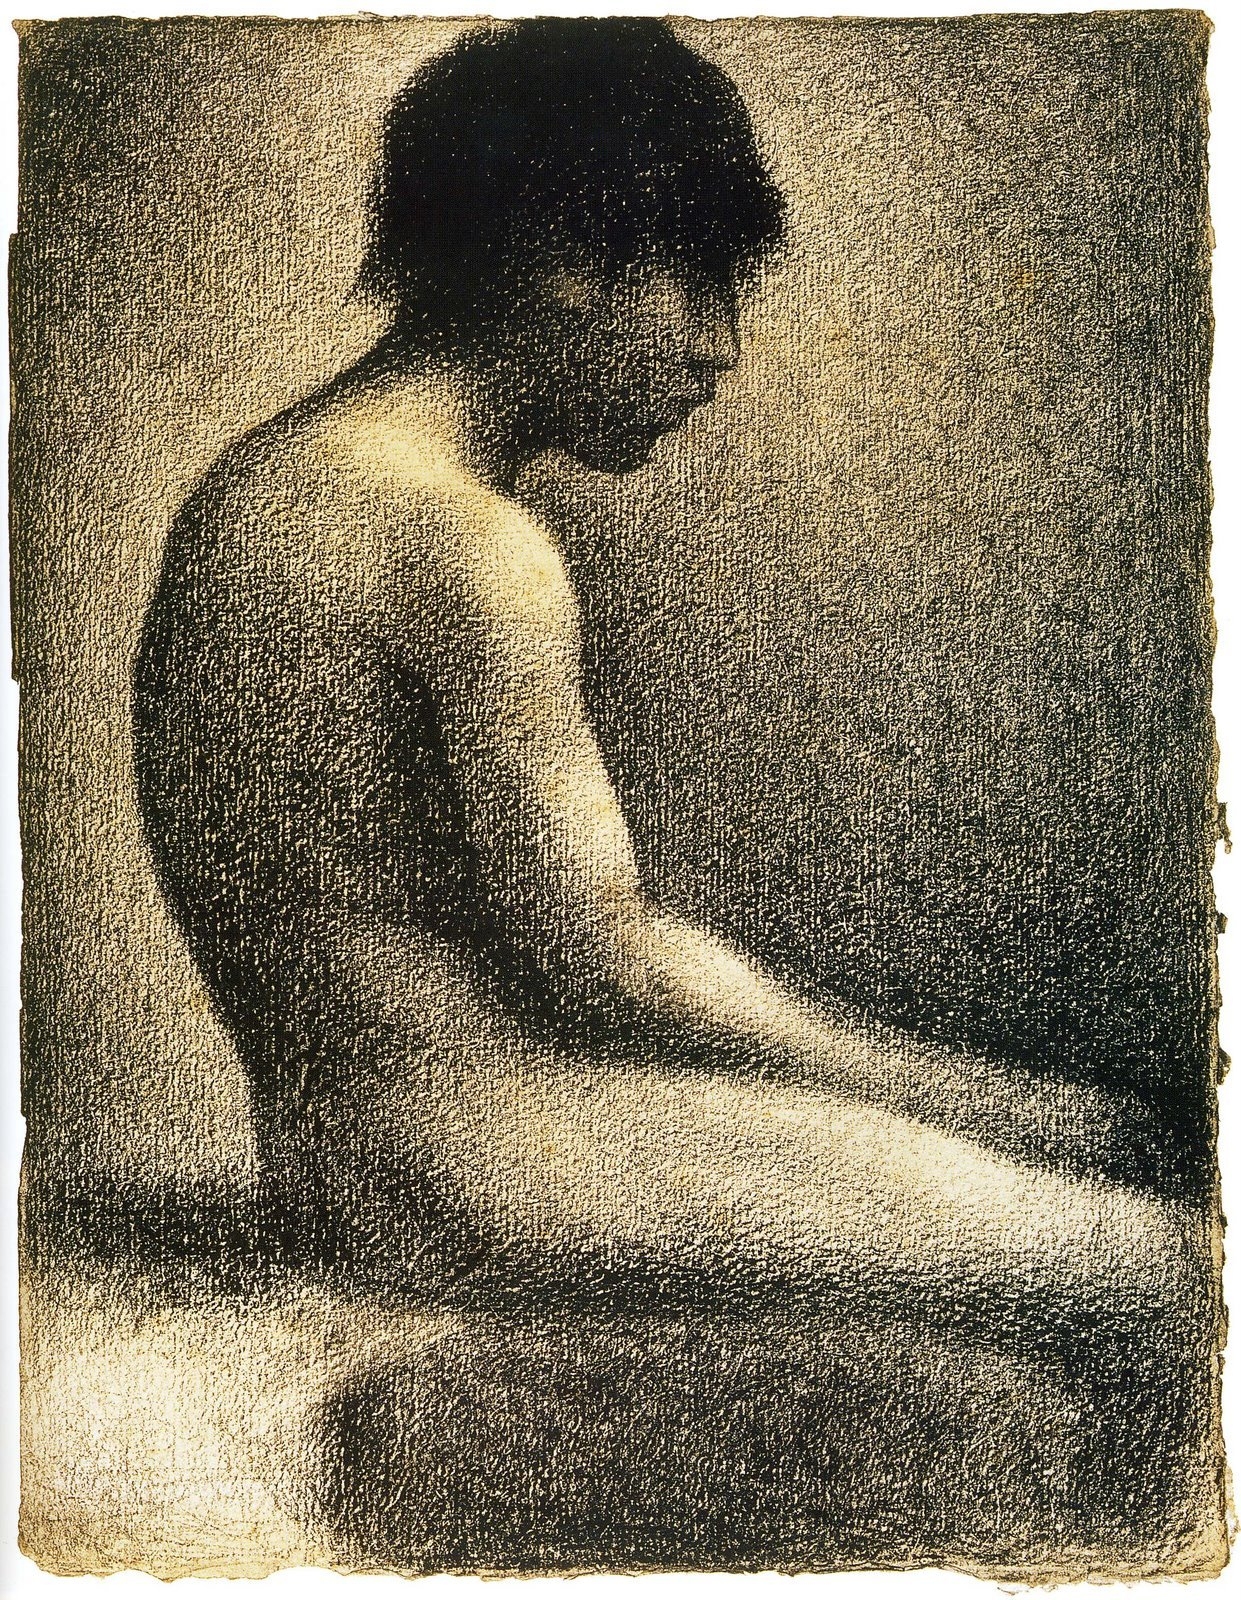 Georges Seurat - study for Bathers at Asnières, 1884.